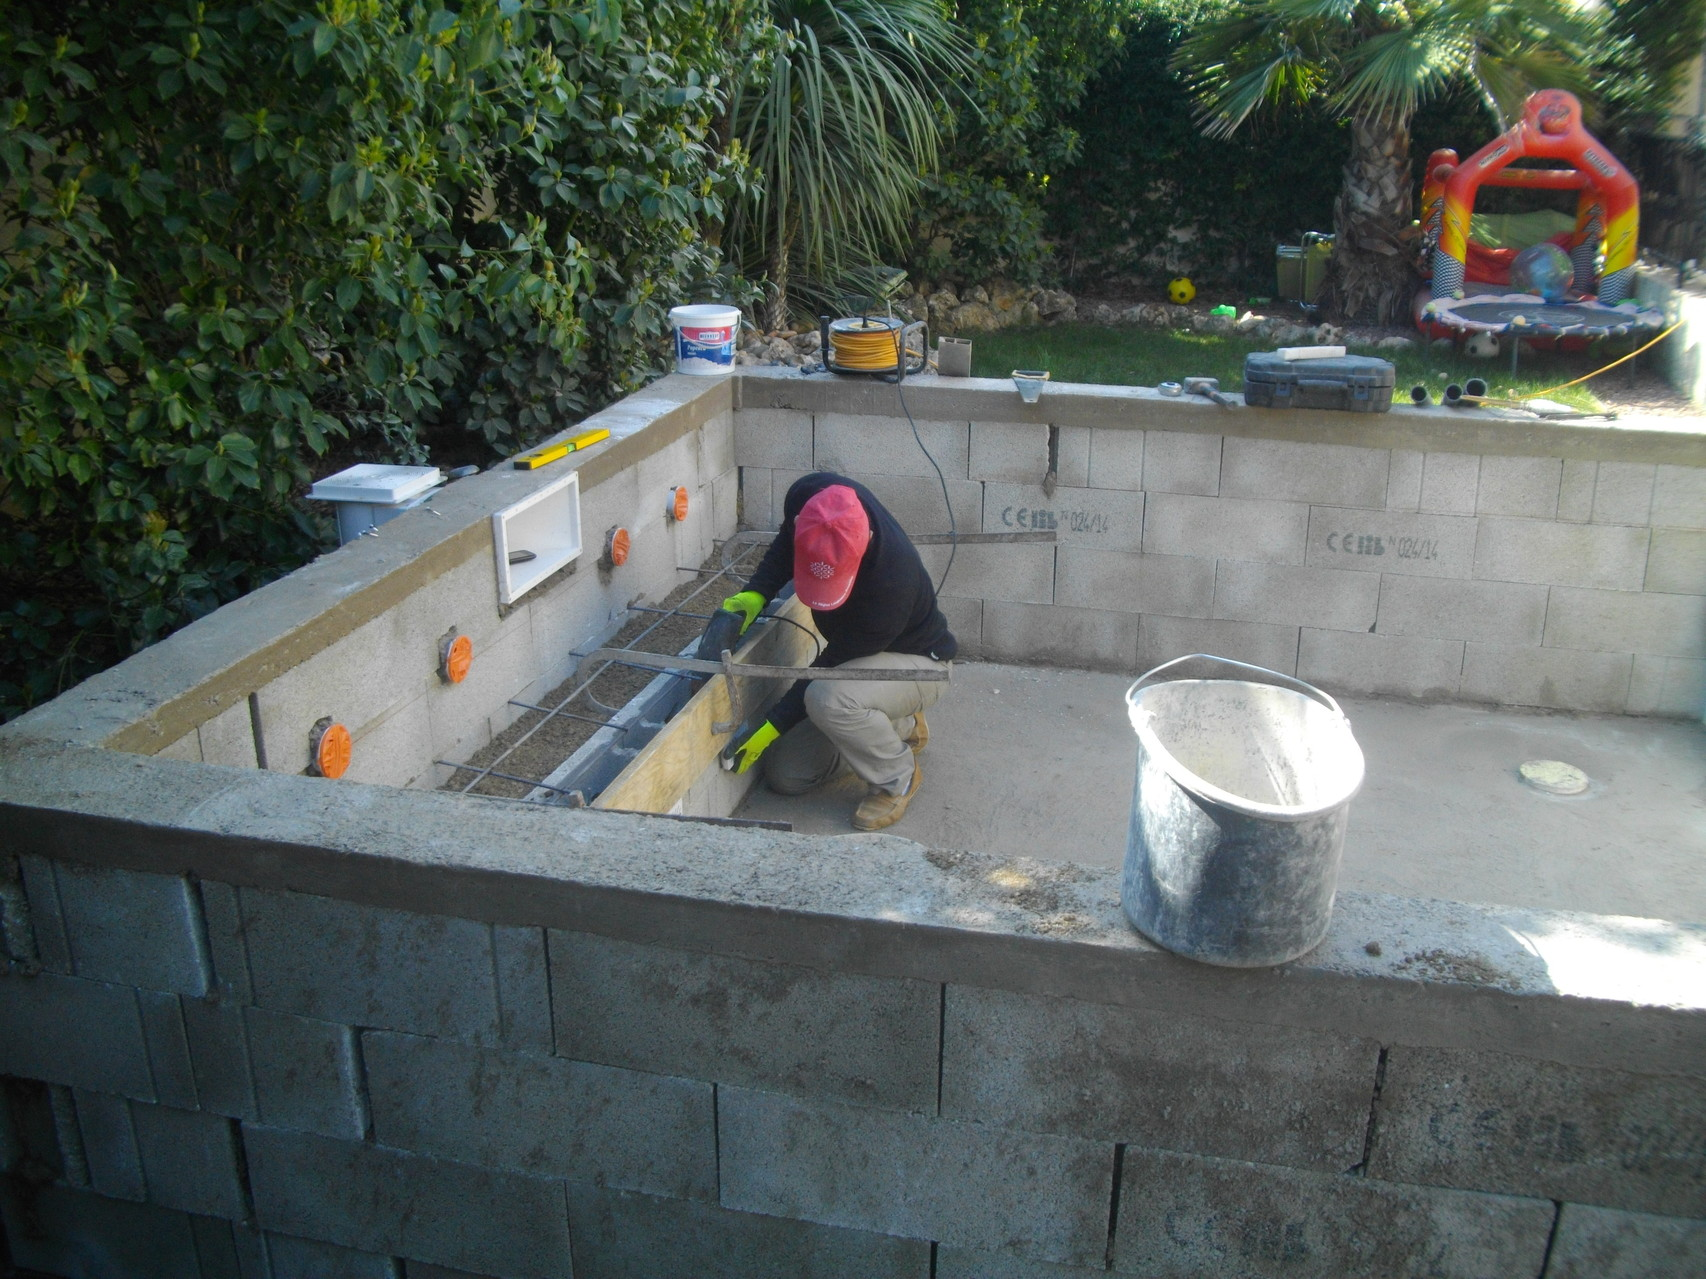 Constructeur de piscines et spas 0660978914 piscine kachou for Construction piscine 76